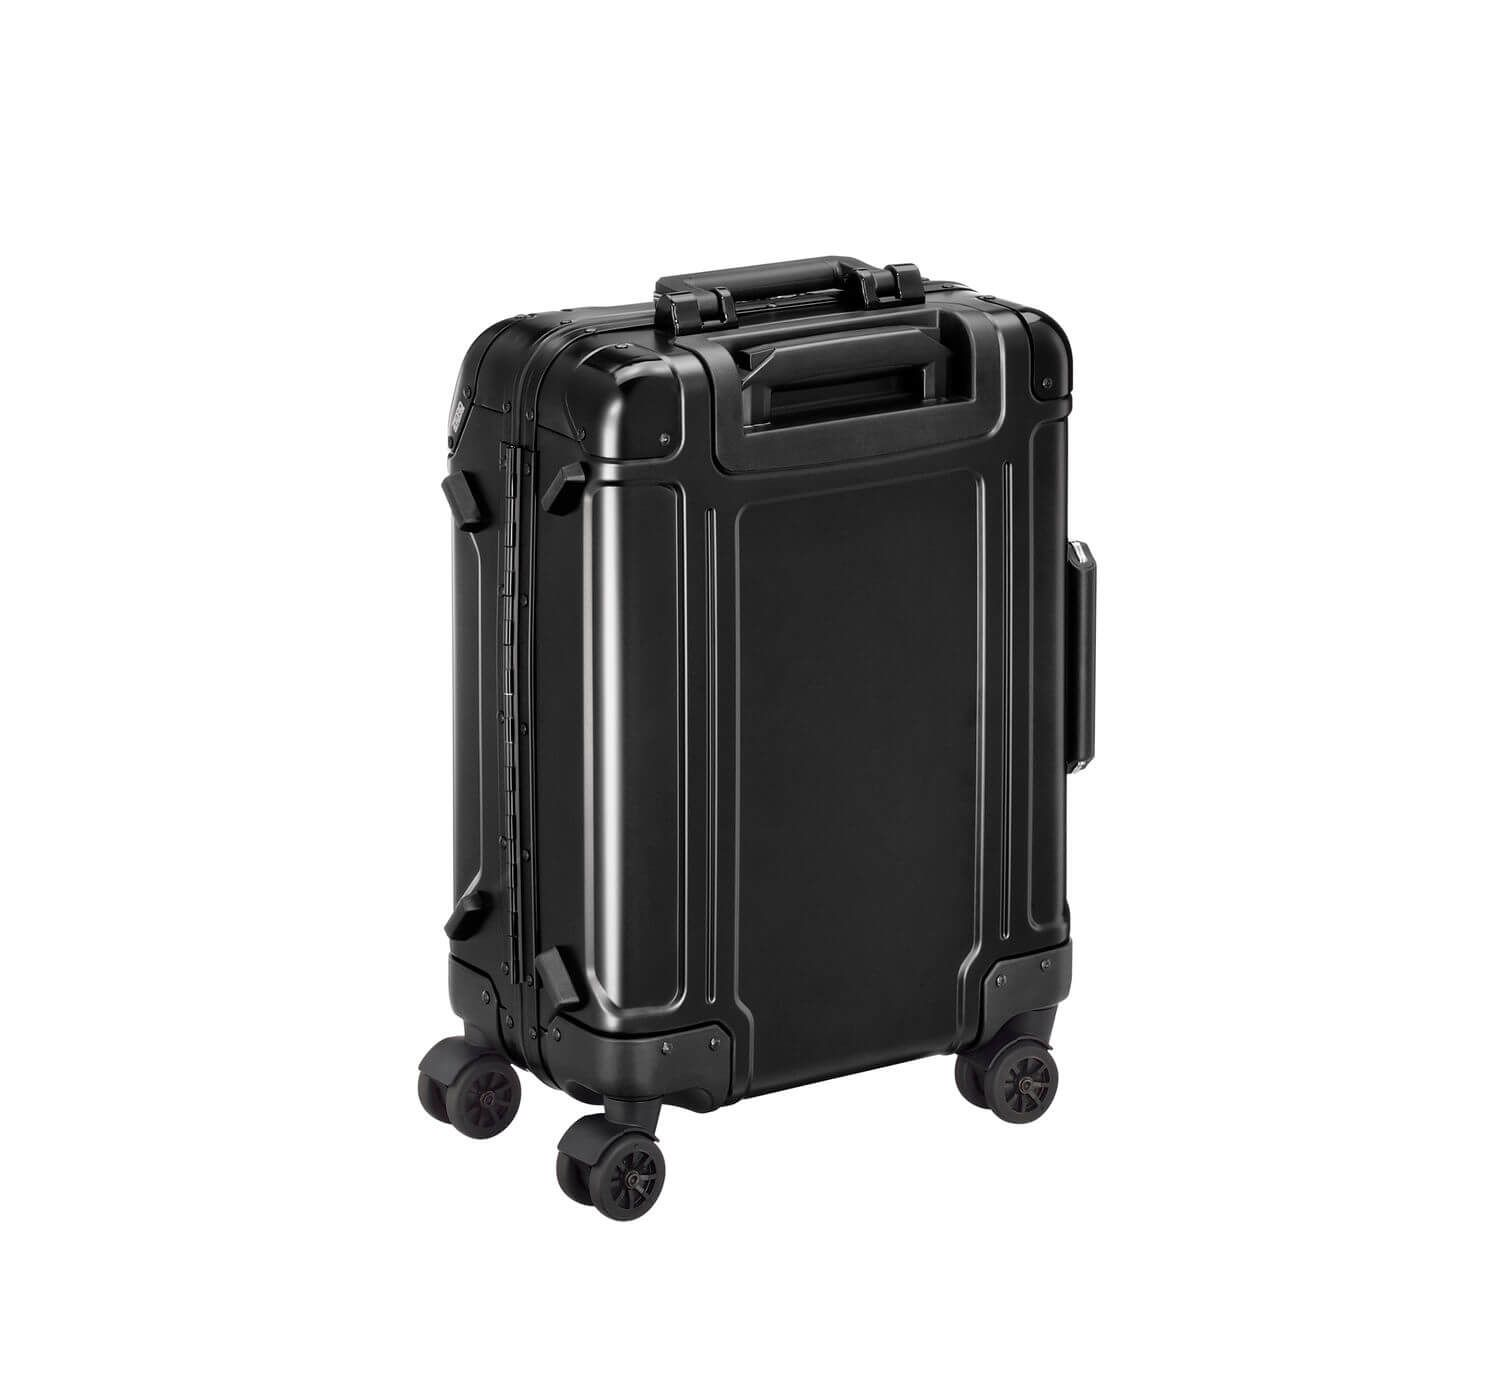 Geo Aluminum 2.0 - Carry-on 4-Wheel Spinner Luggage - фото 3